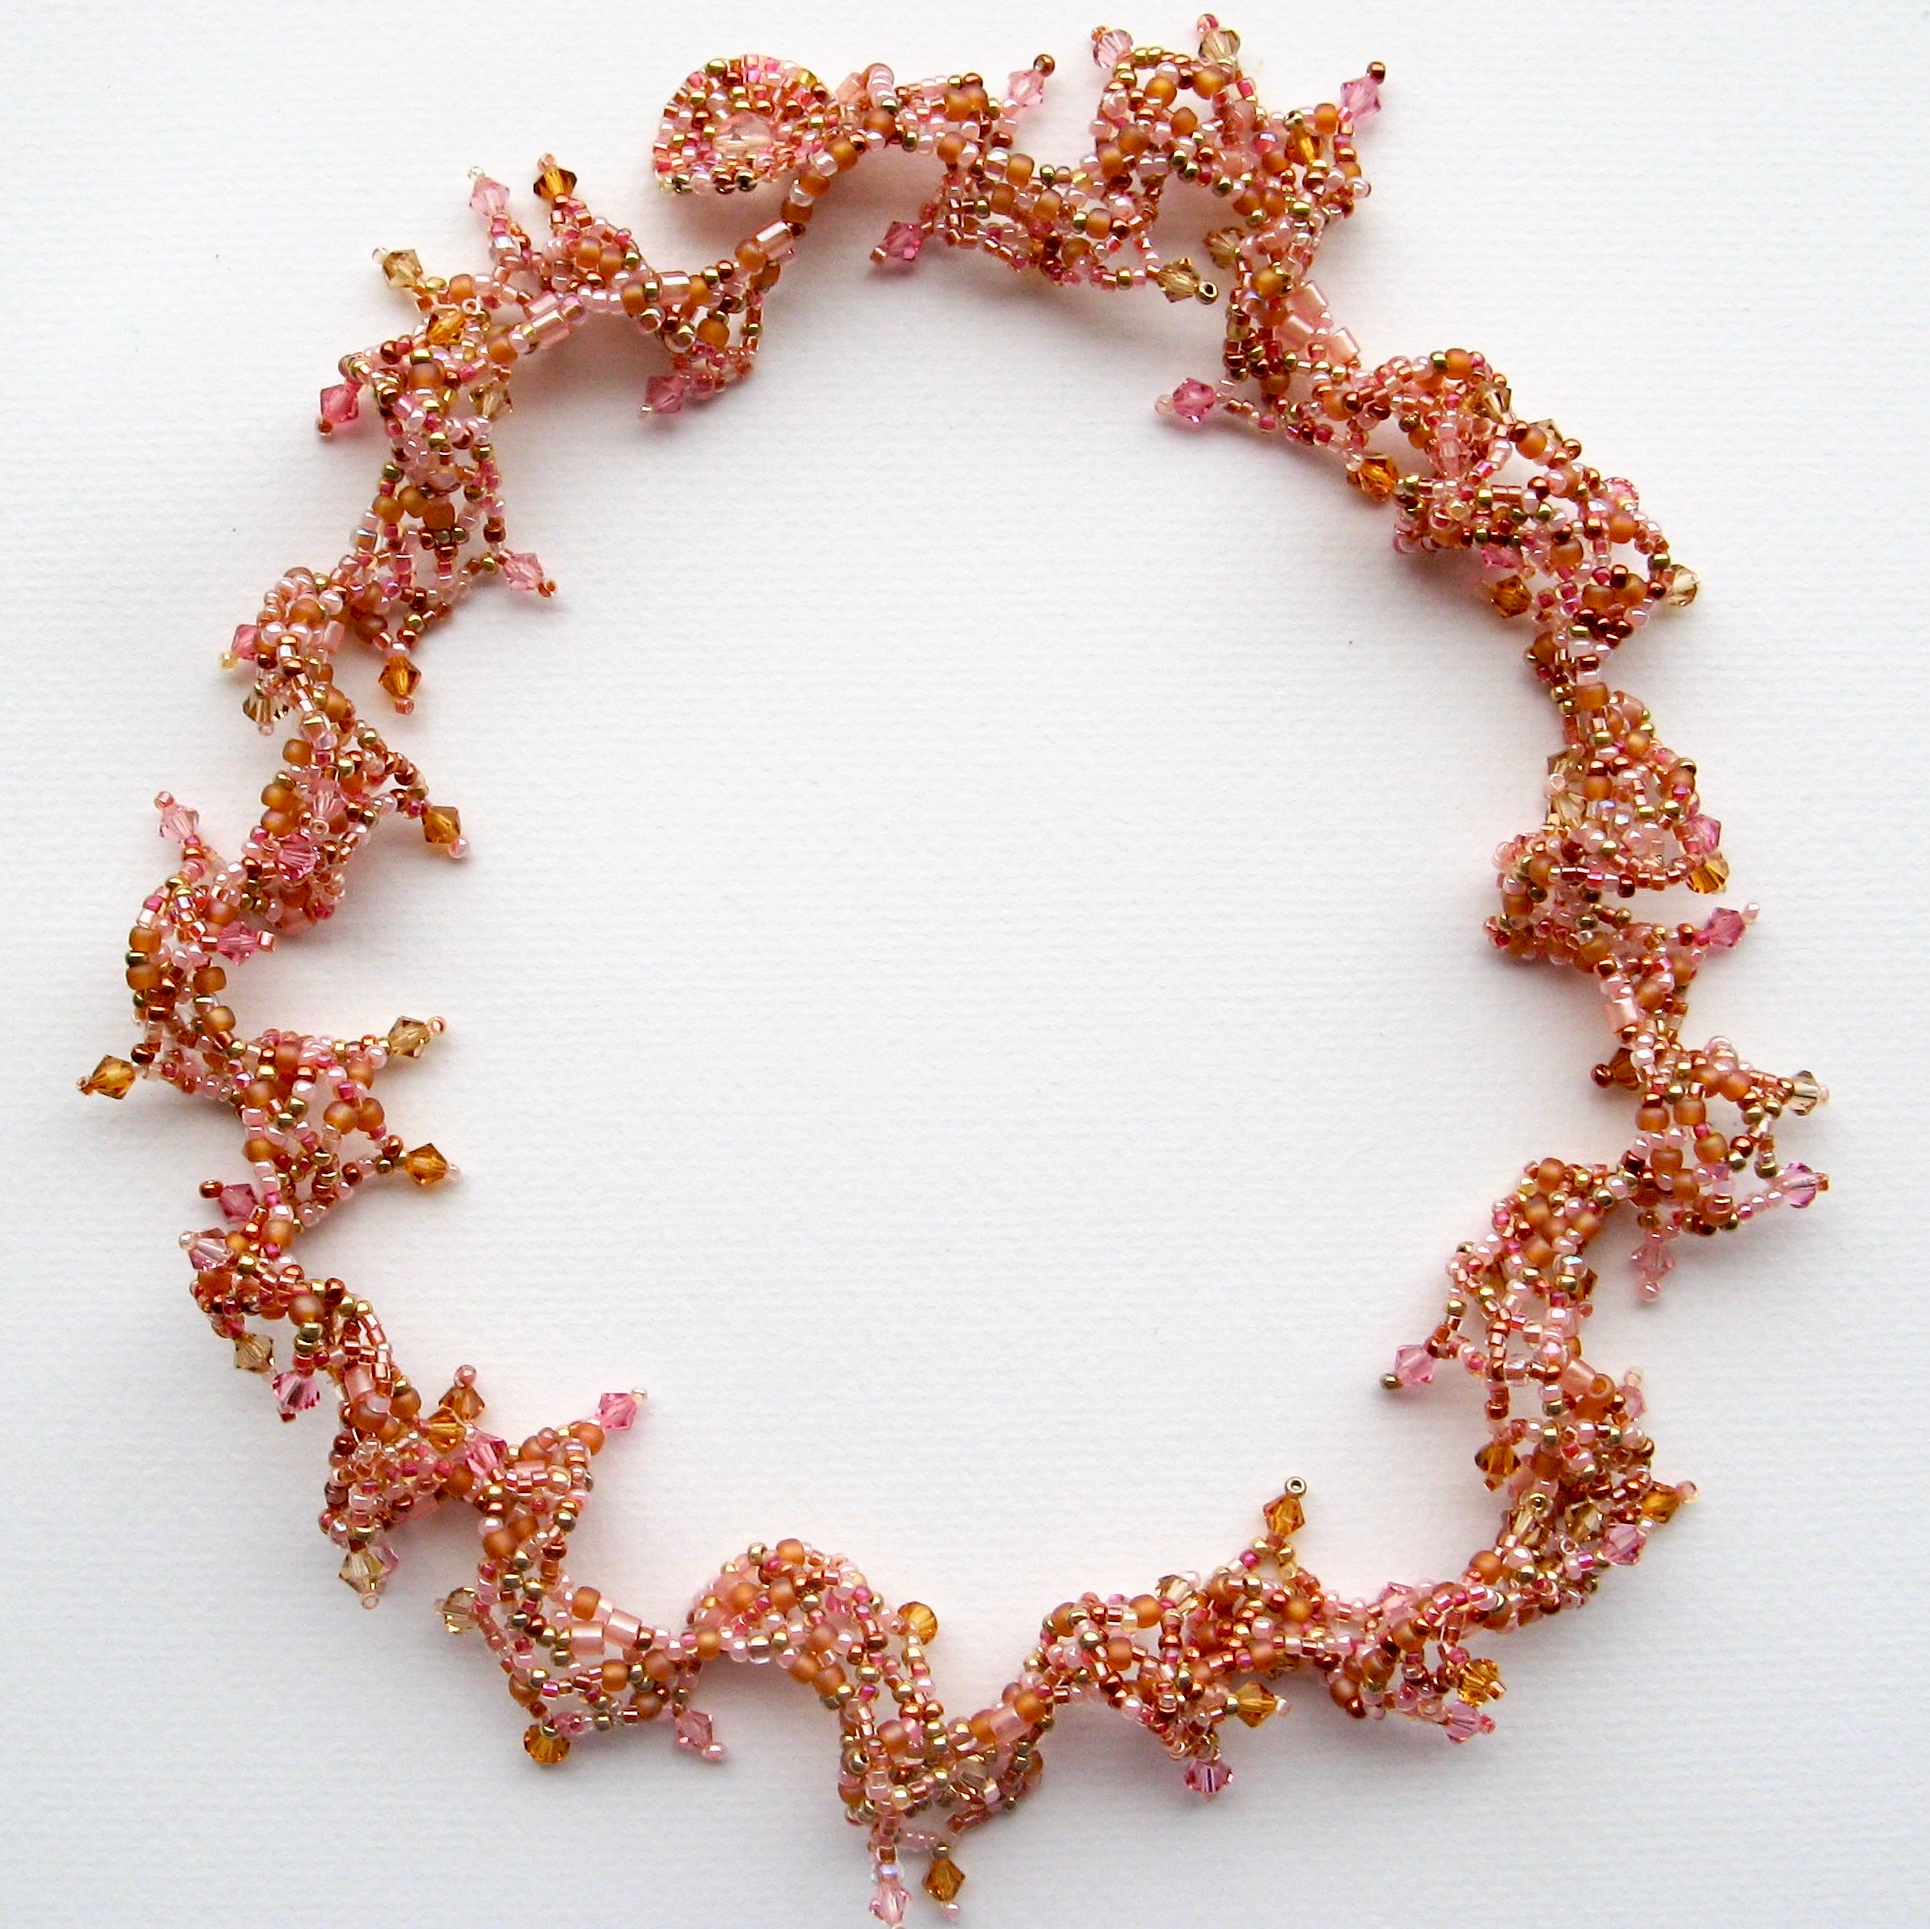 Bead Weaving Lacy Effects for Jewellery (WS) : Sally Boehme